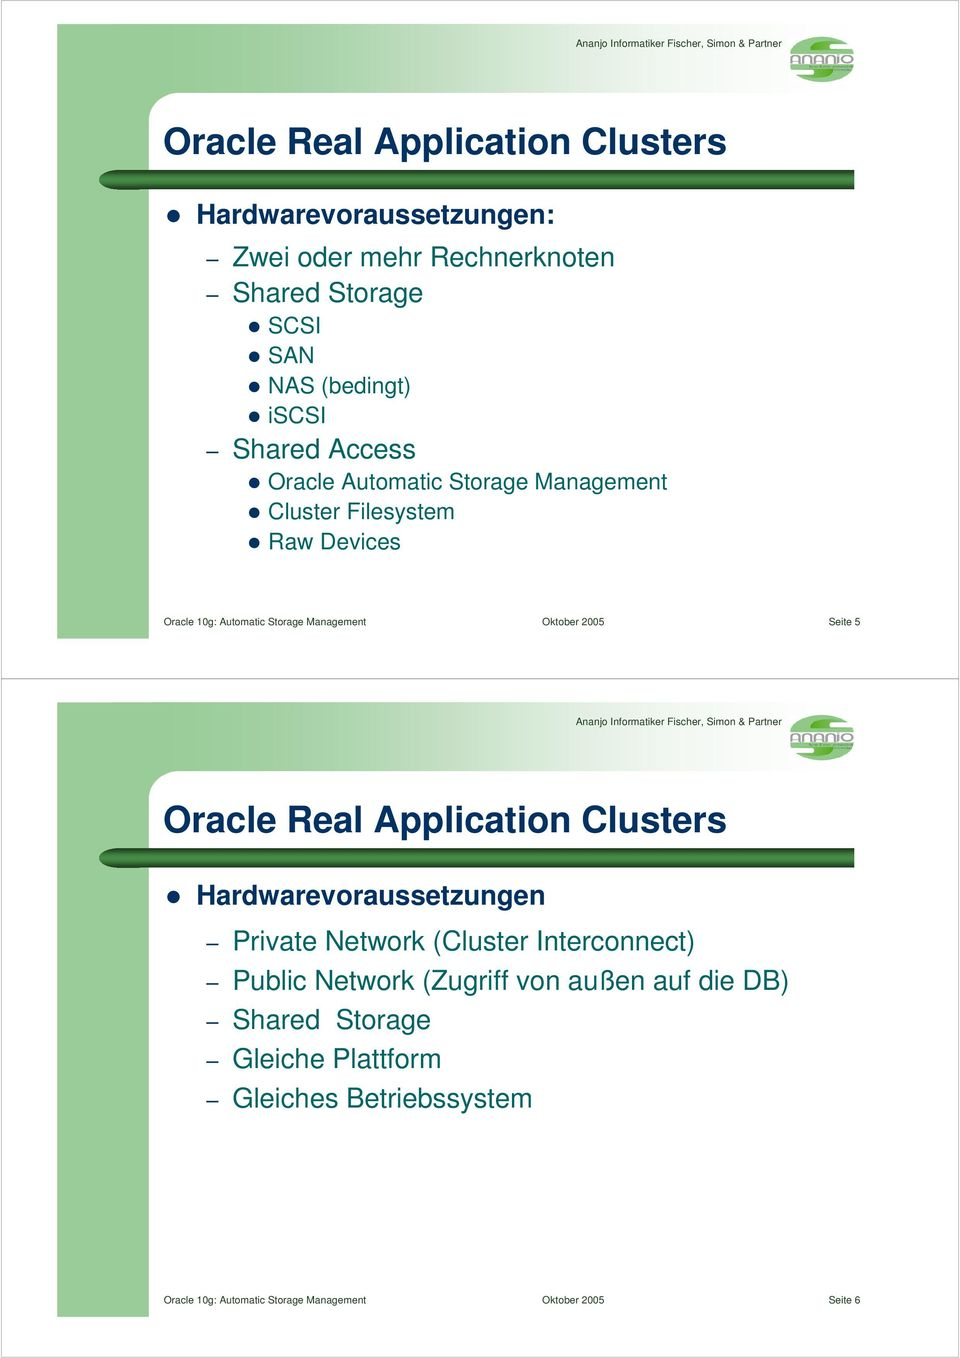 2005 Seite 5 Oracle Real Application Clusters Hardwarevoraussetzungen Private Network (Cluster Interconnect) Public Network (Zugriff